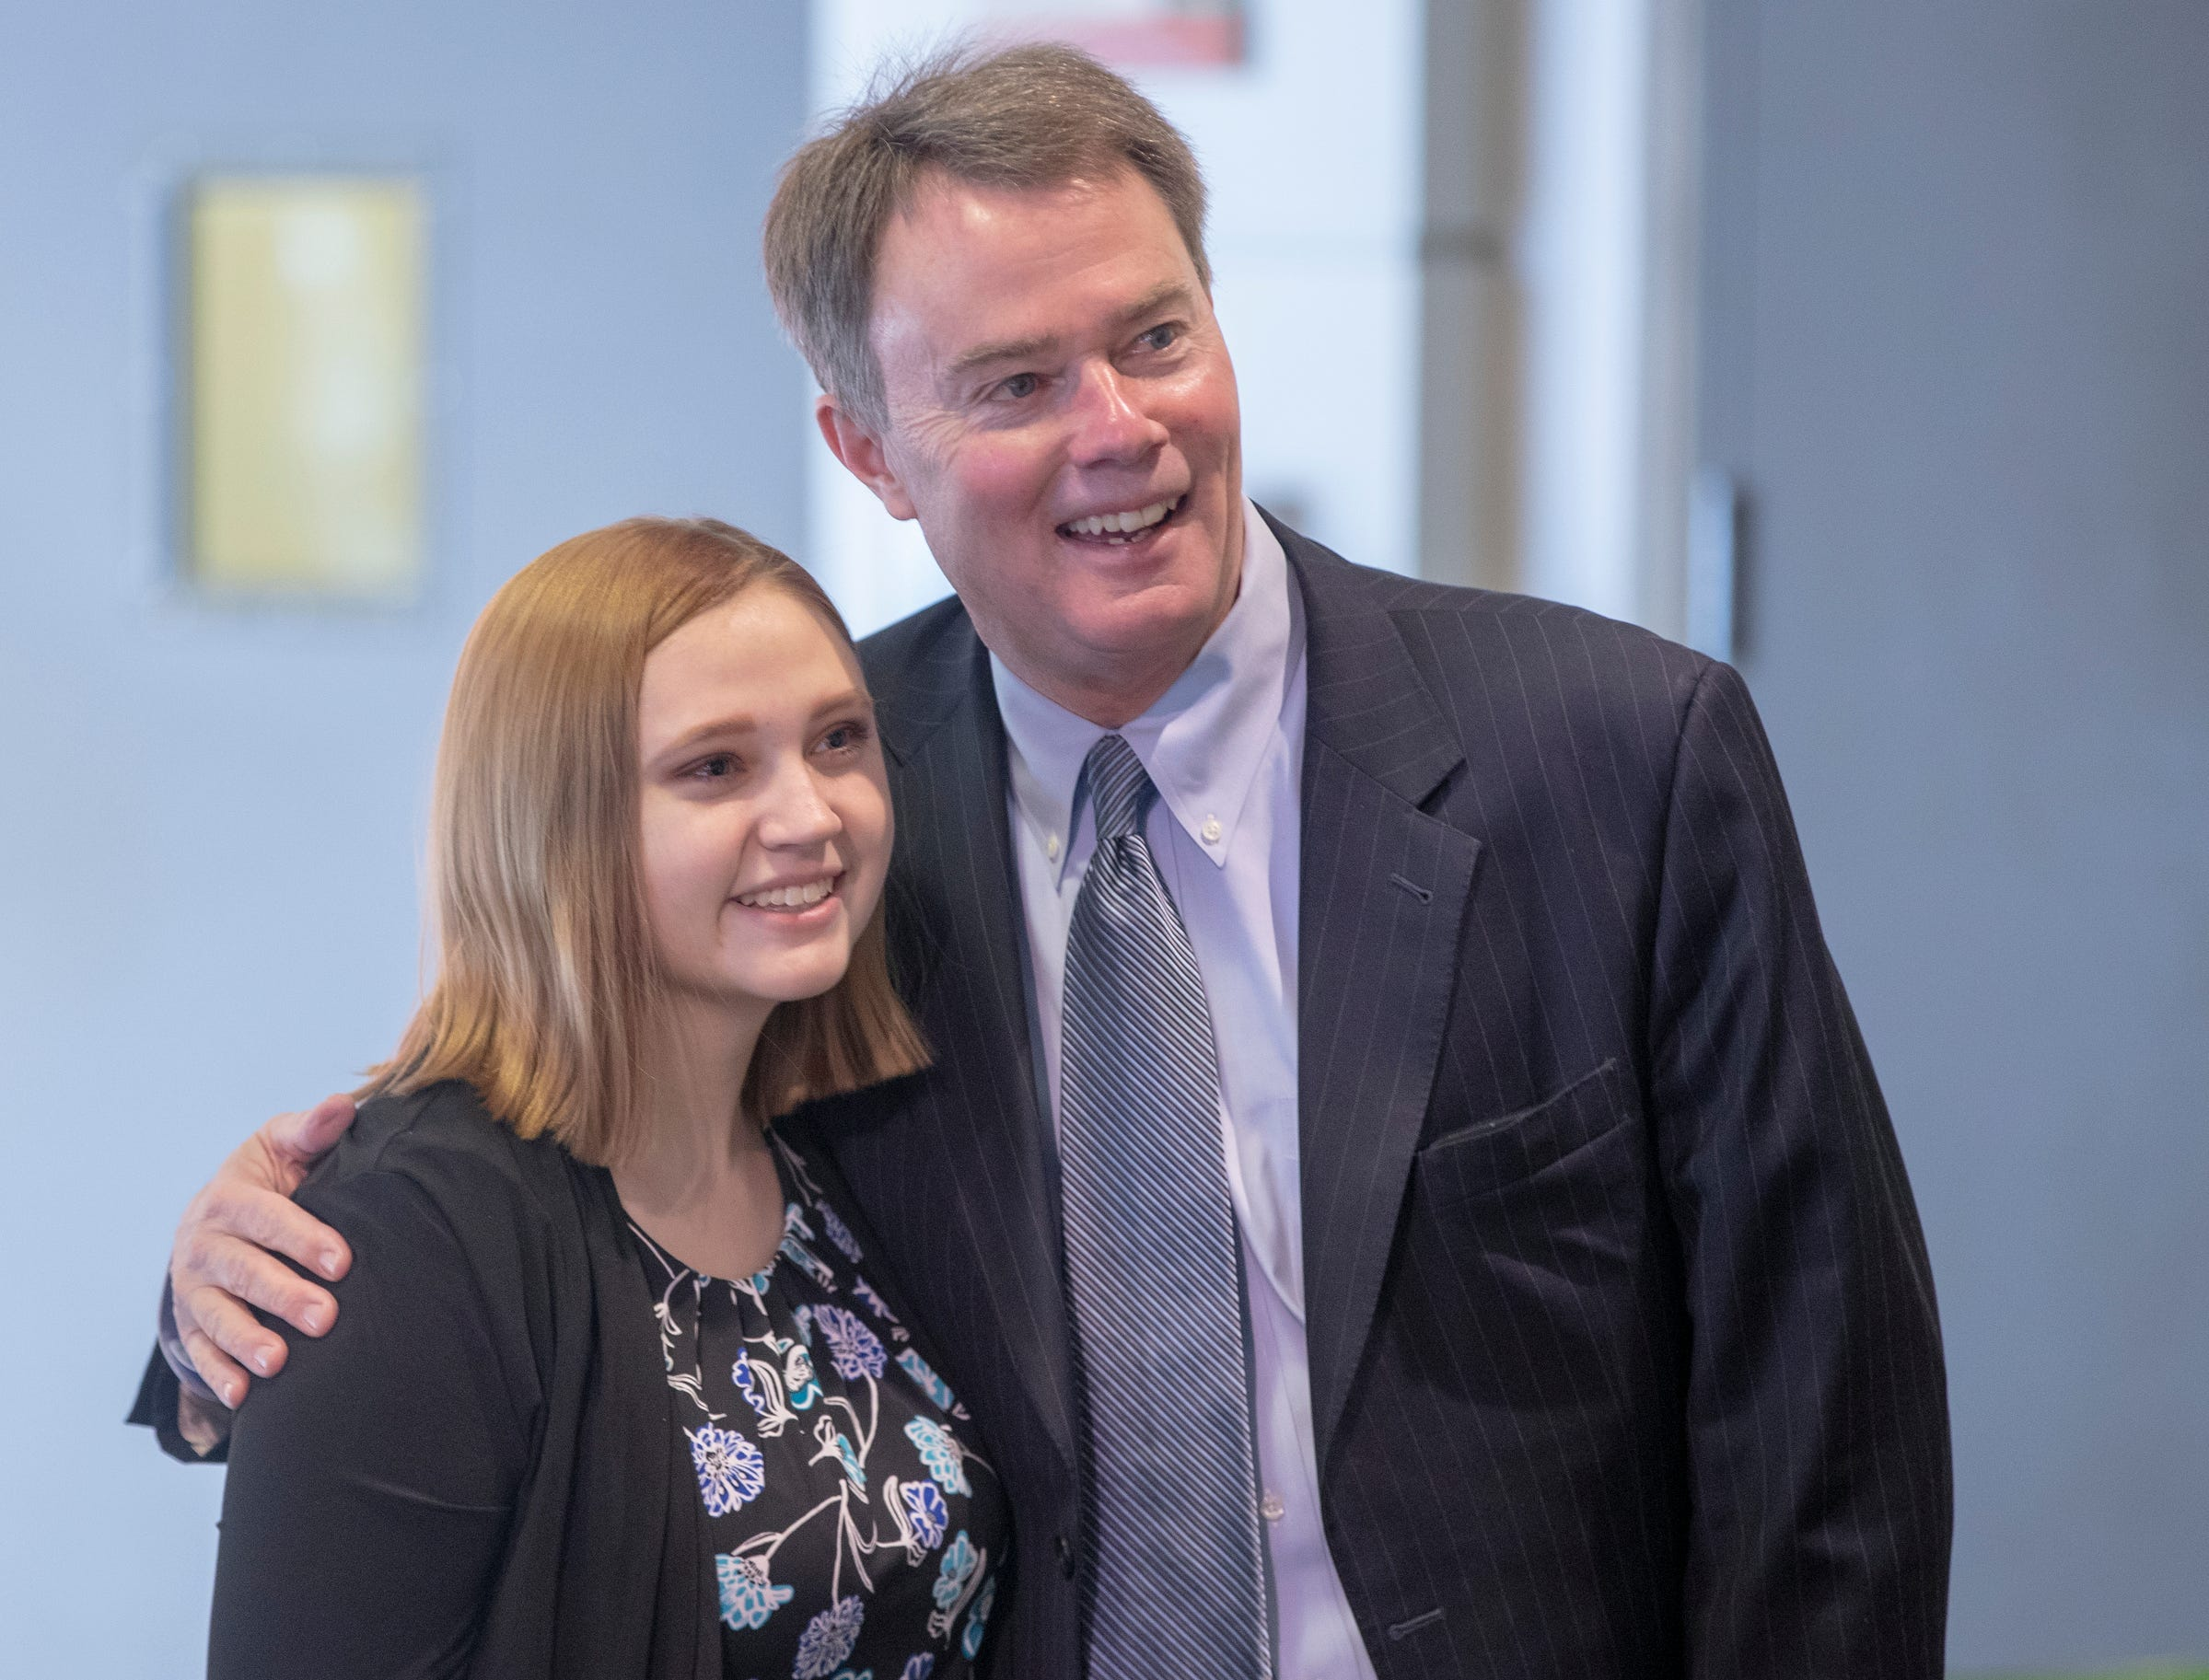 Ashley Lawson poses for a photo with Mayor Joe Hogsett before an announcement about Hogsett's EmployIndy program, at the Indianapolis Zoo, Wednesday, Jan. 30, 2019. Lawson, a student at Decatur Central High School, participated at the program last Summer.